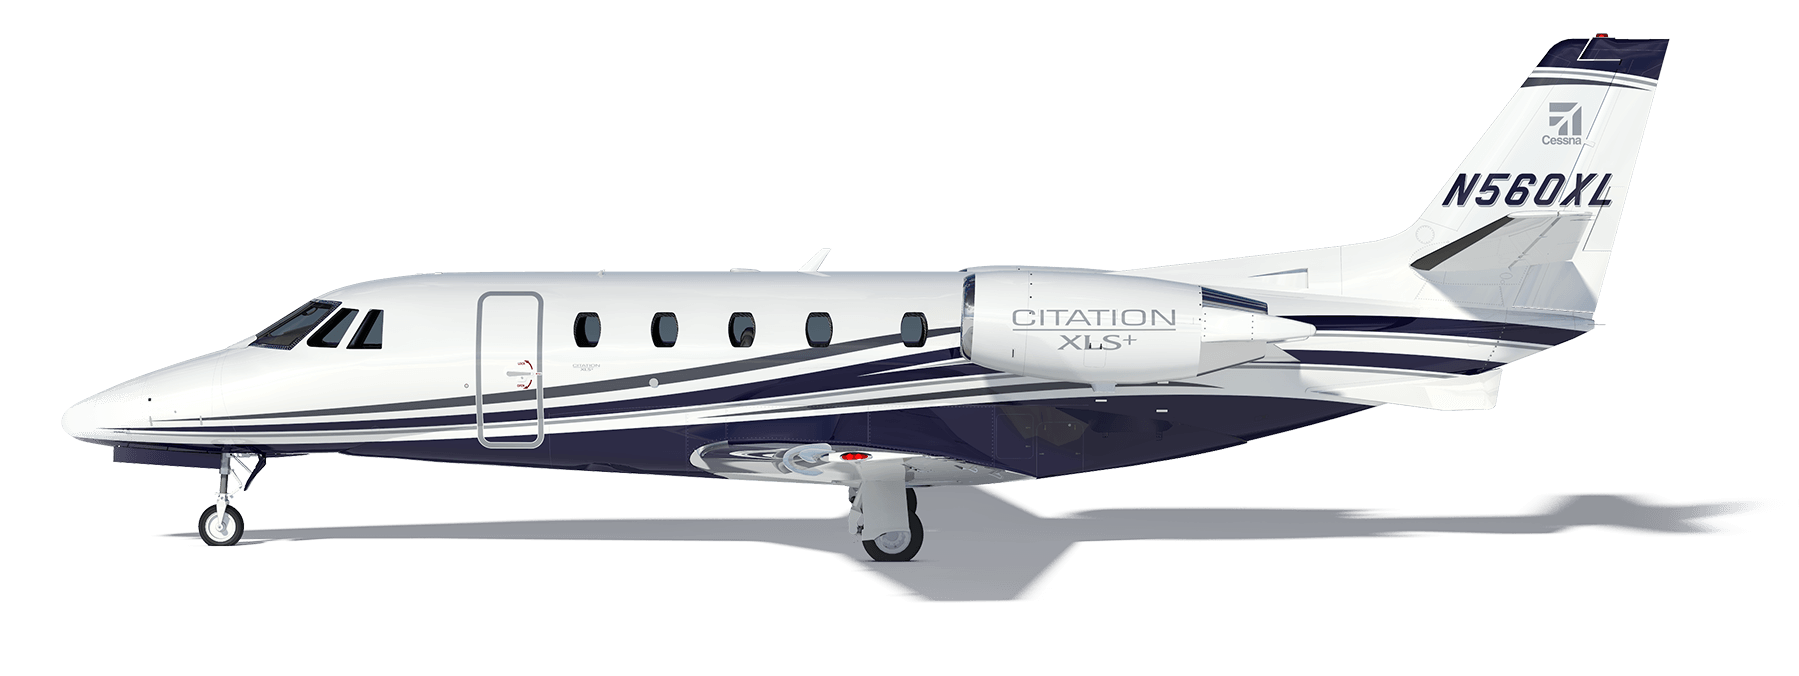 India transparent plane. Citation xls airborne solutions